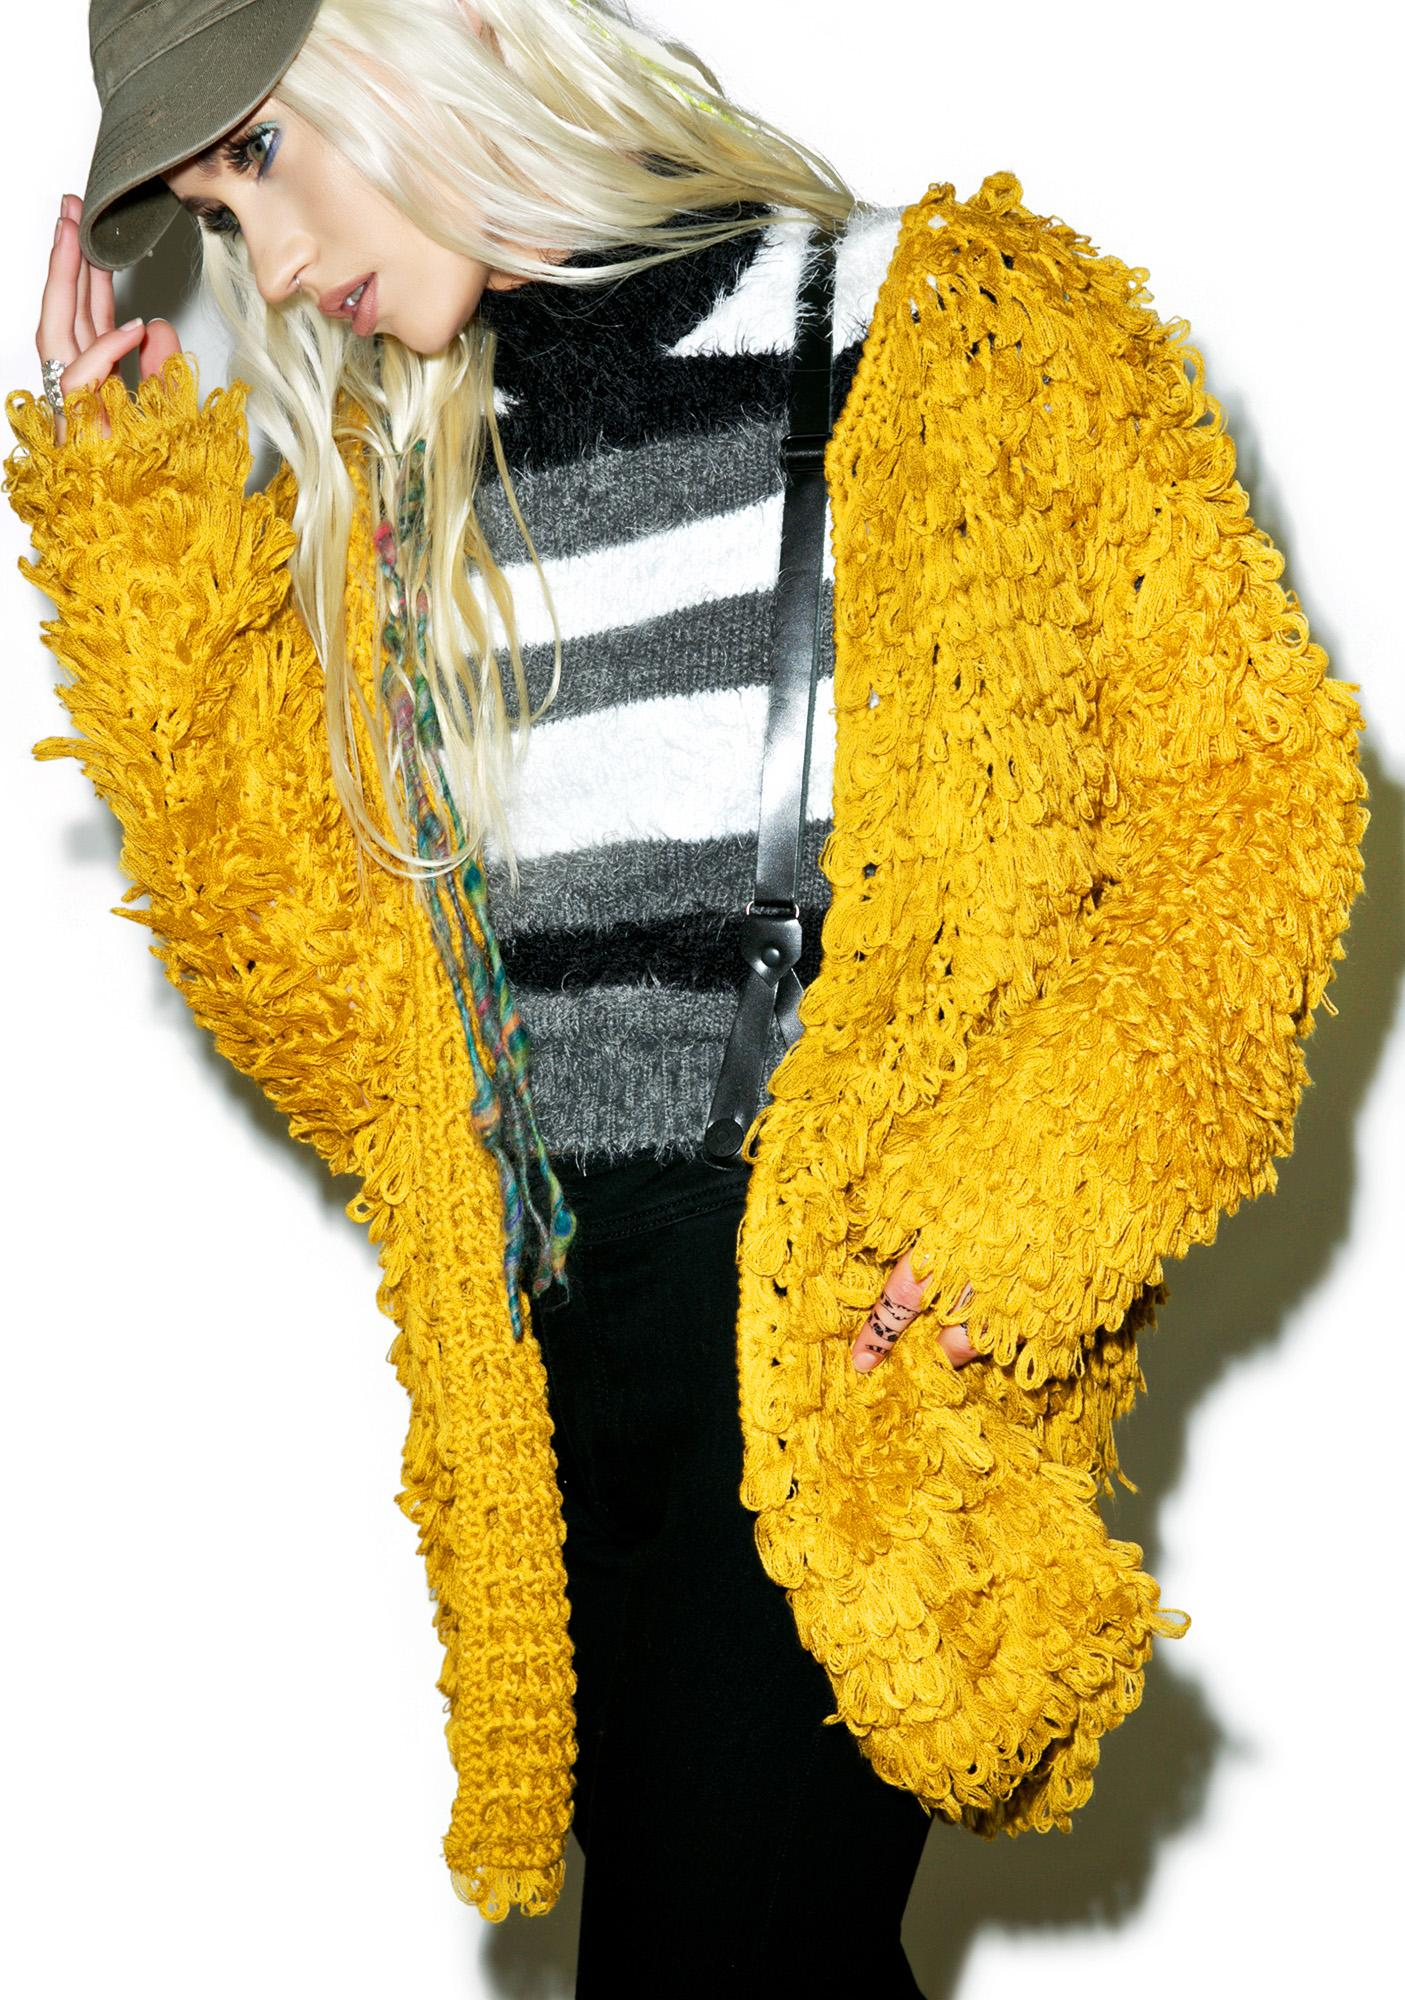 For Love & Lemons Goldenrod Joplin Cardi